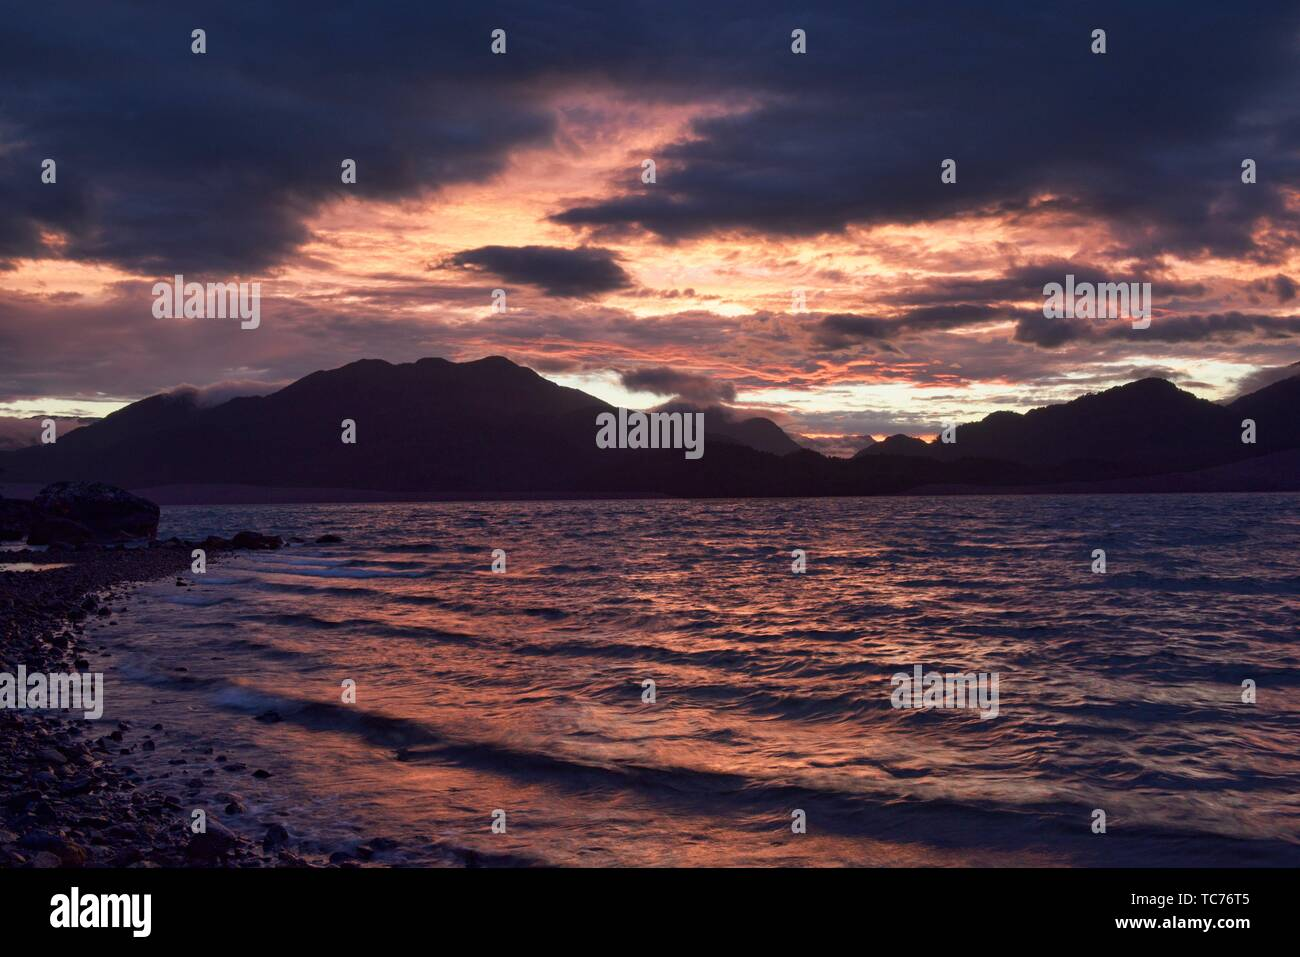 Magnificent sunset over the Puyuhuapi fjord in the Ventisquero Sound, Patagonia, Aysen, Chile. - Stock Image